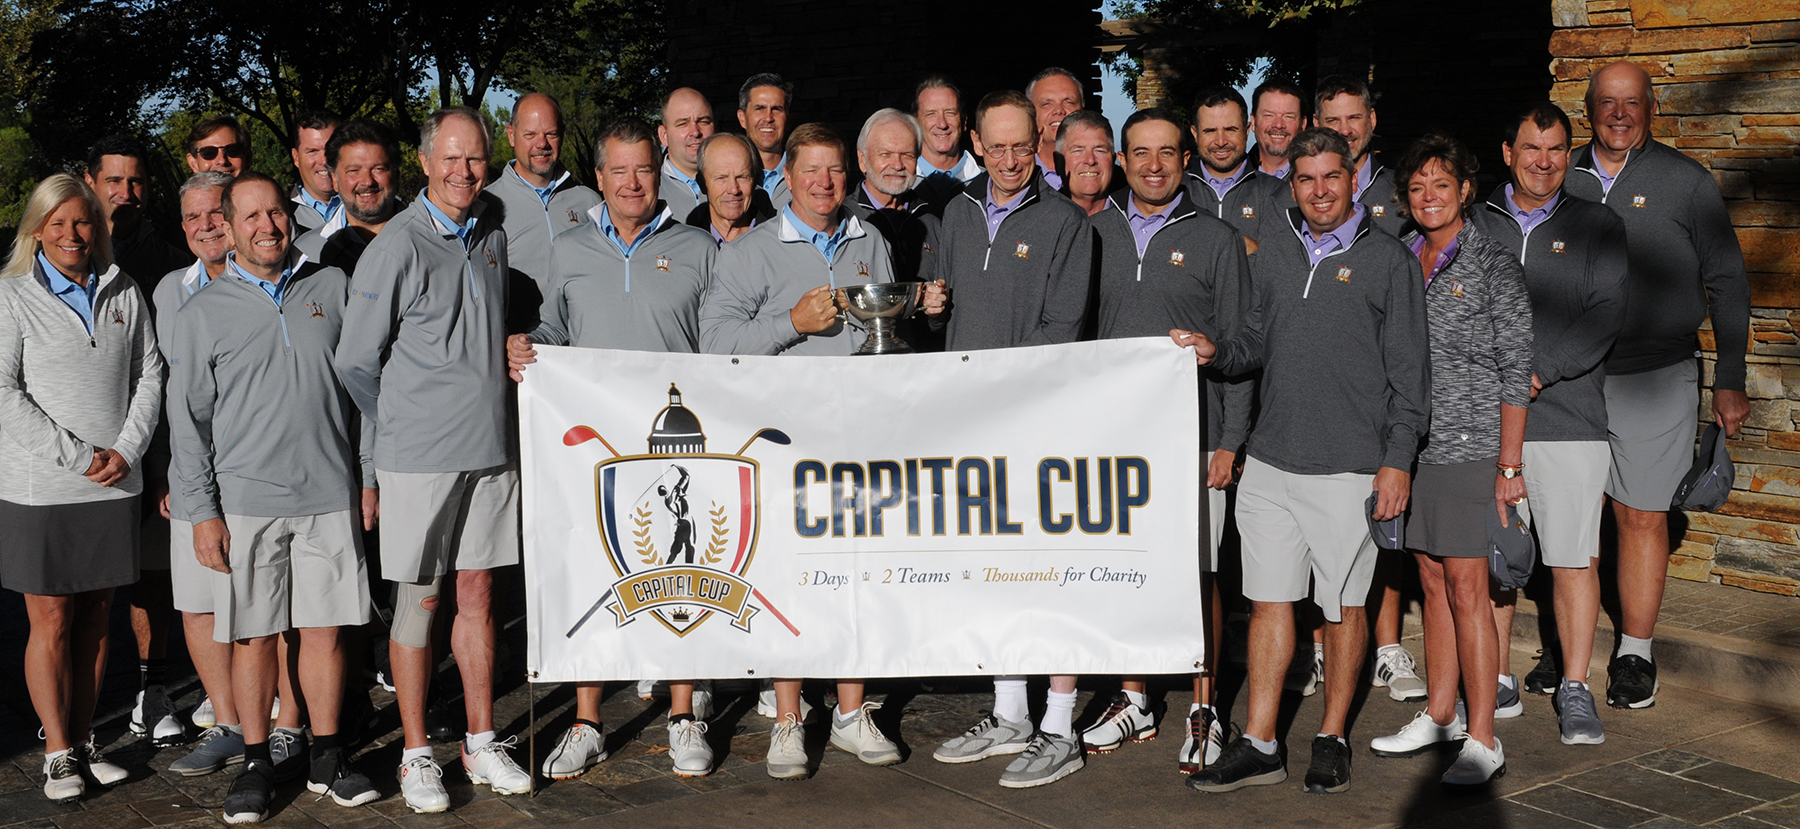 Photo of the 2018 Capital Cup Teams